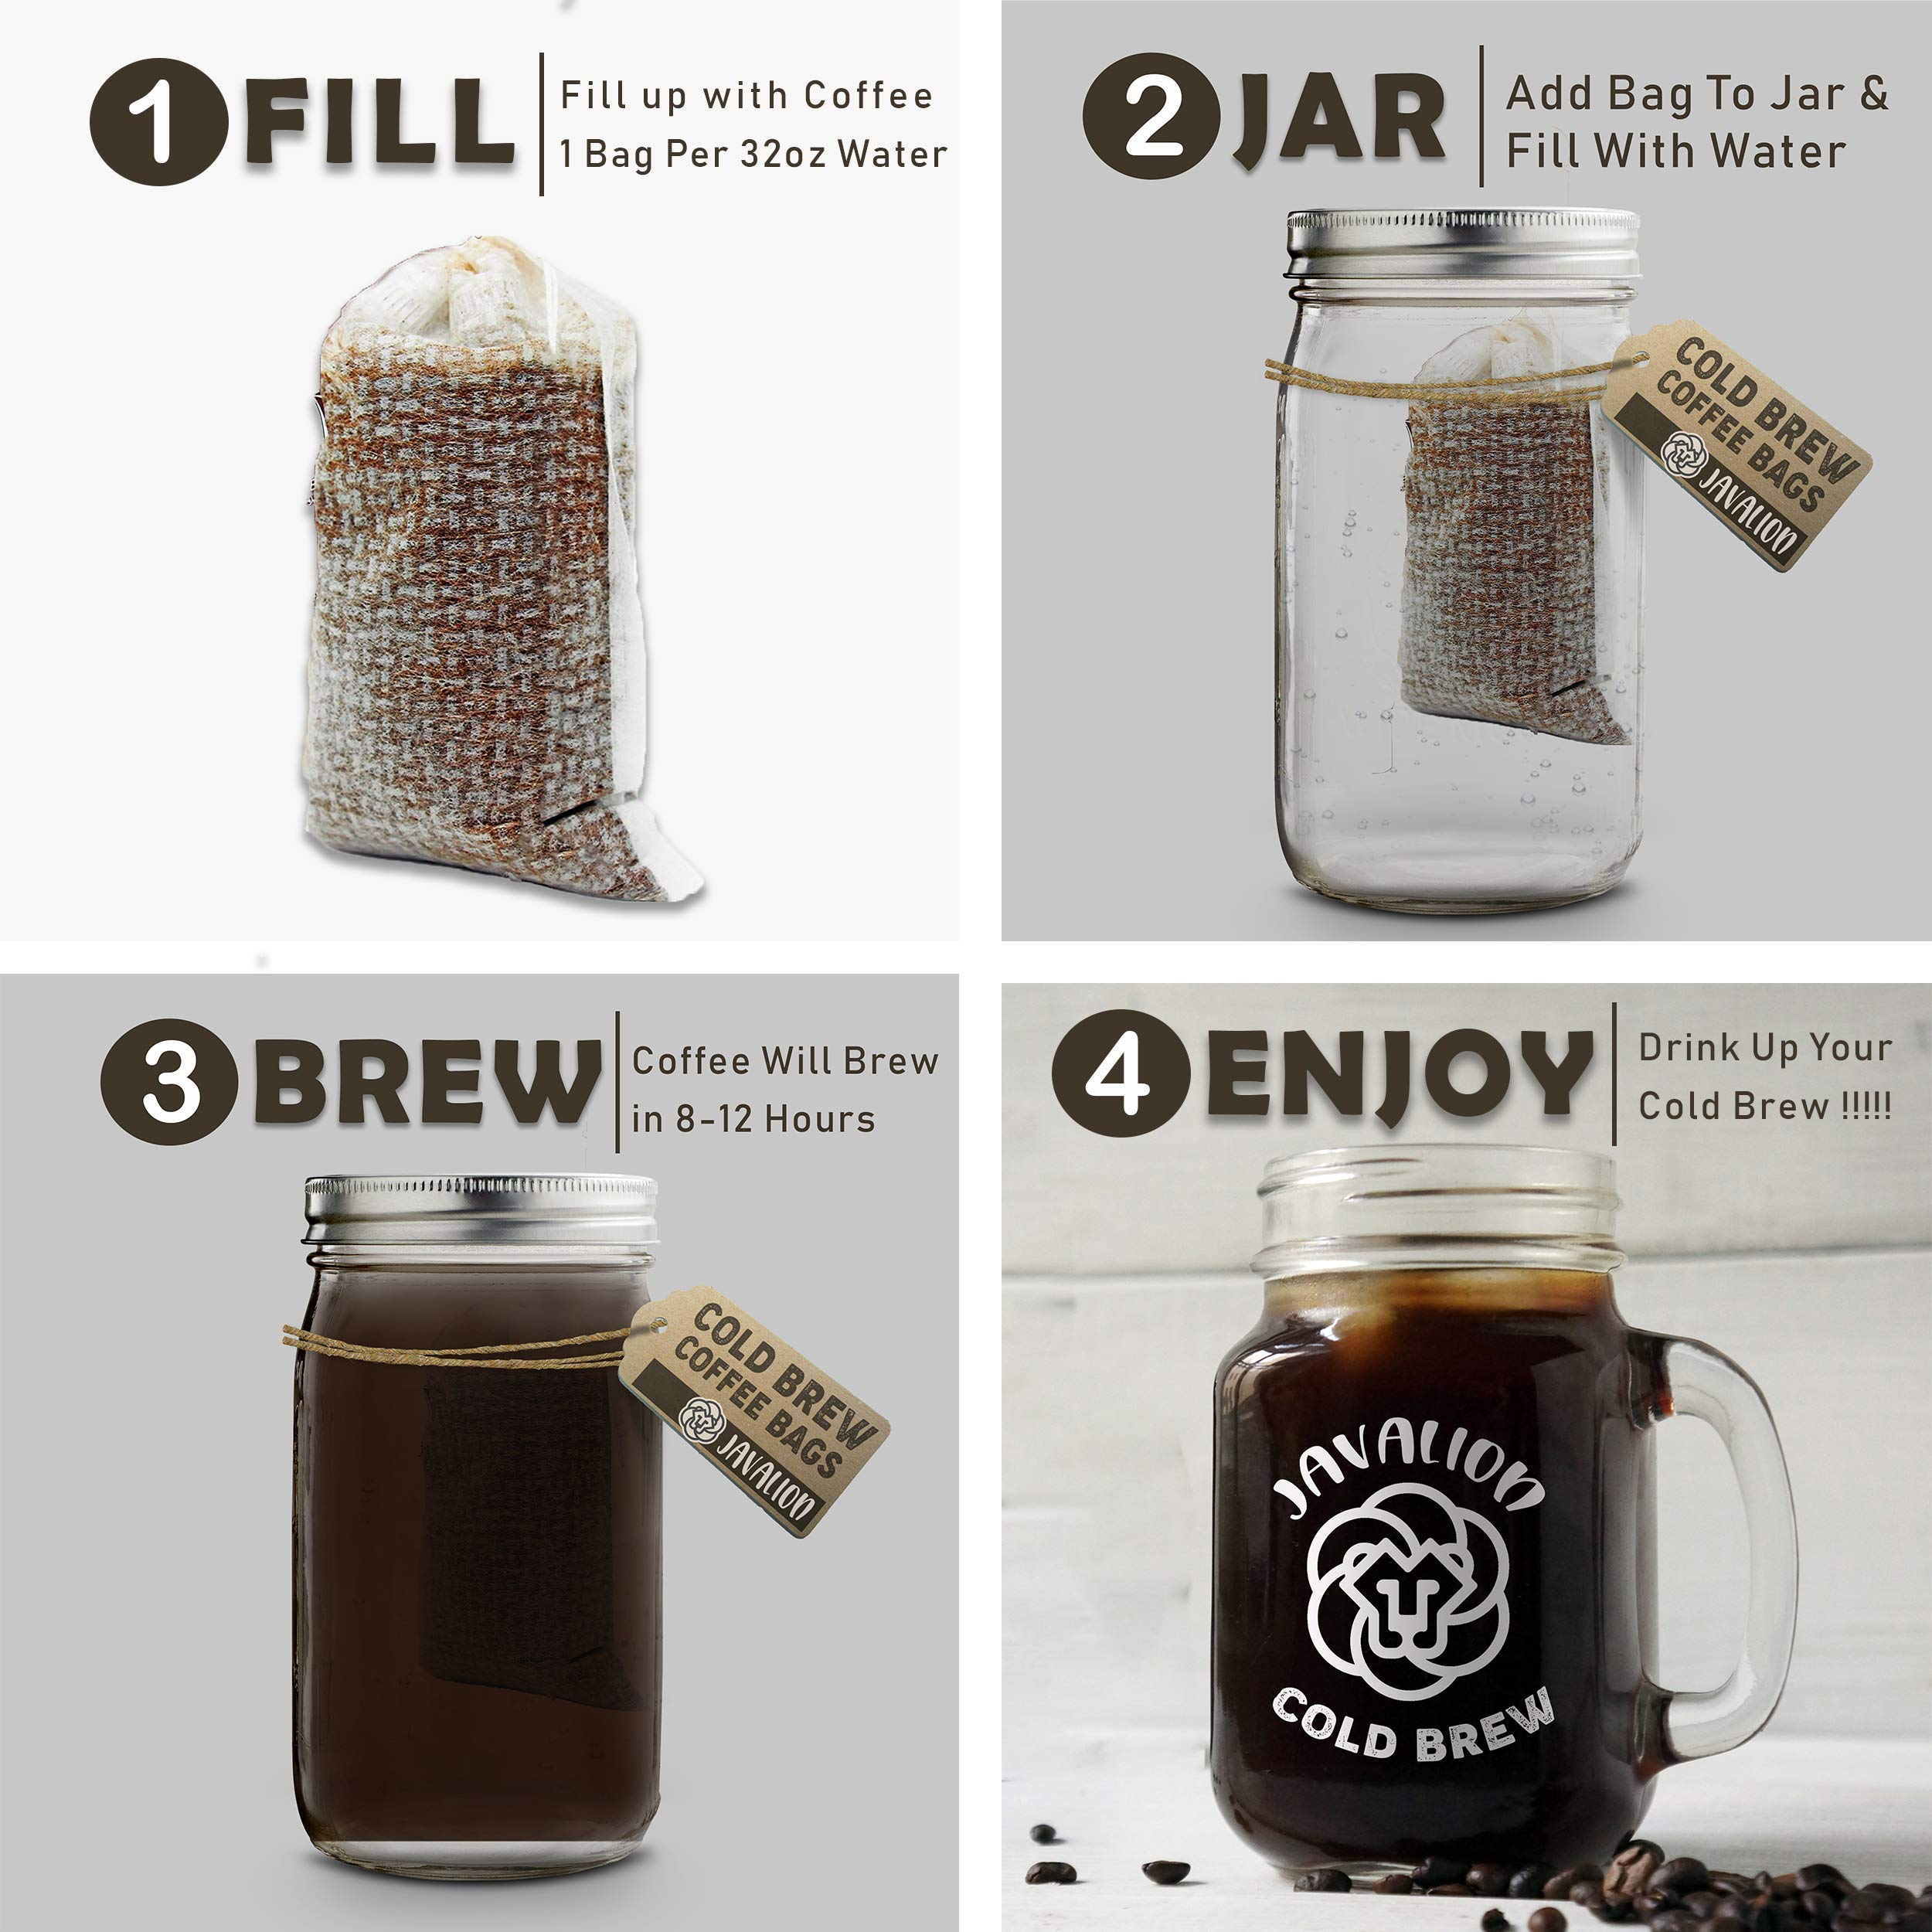 Cold Brew Coffee Bags – Easily Make Great Cold Brew Coffee at Home with JavaLion's All Natural Single-Use Cold Brew Coffee Filters. LARGE 4x6 in. Cold Brew Filters Fine Mesh Brewing Bags [30 COUNT] by JavaLion (Image #2)